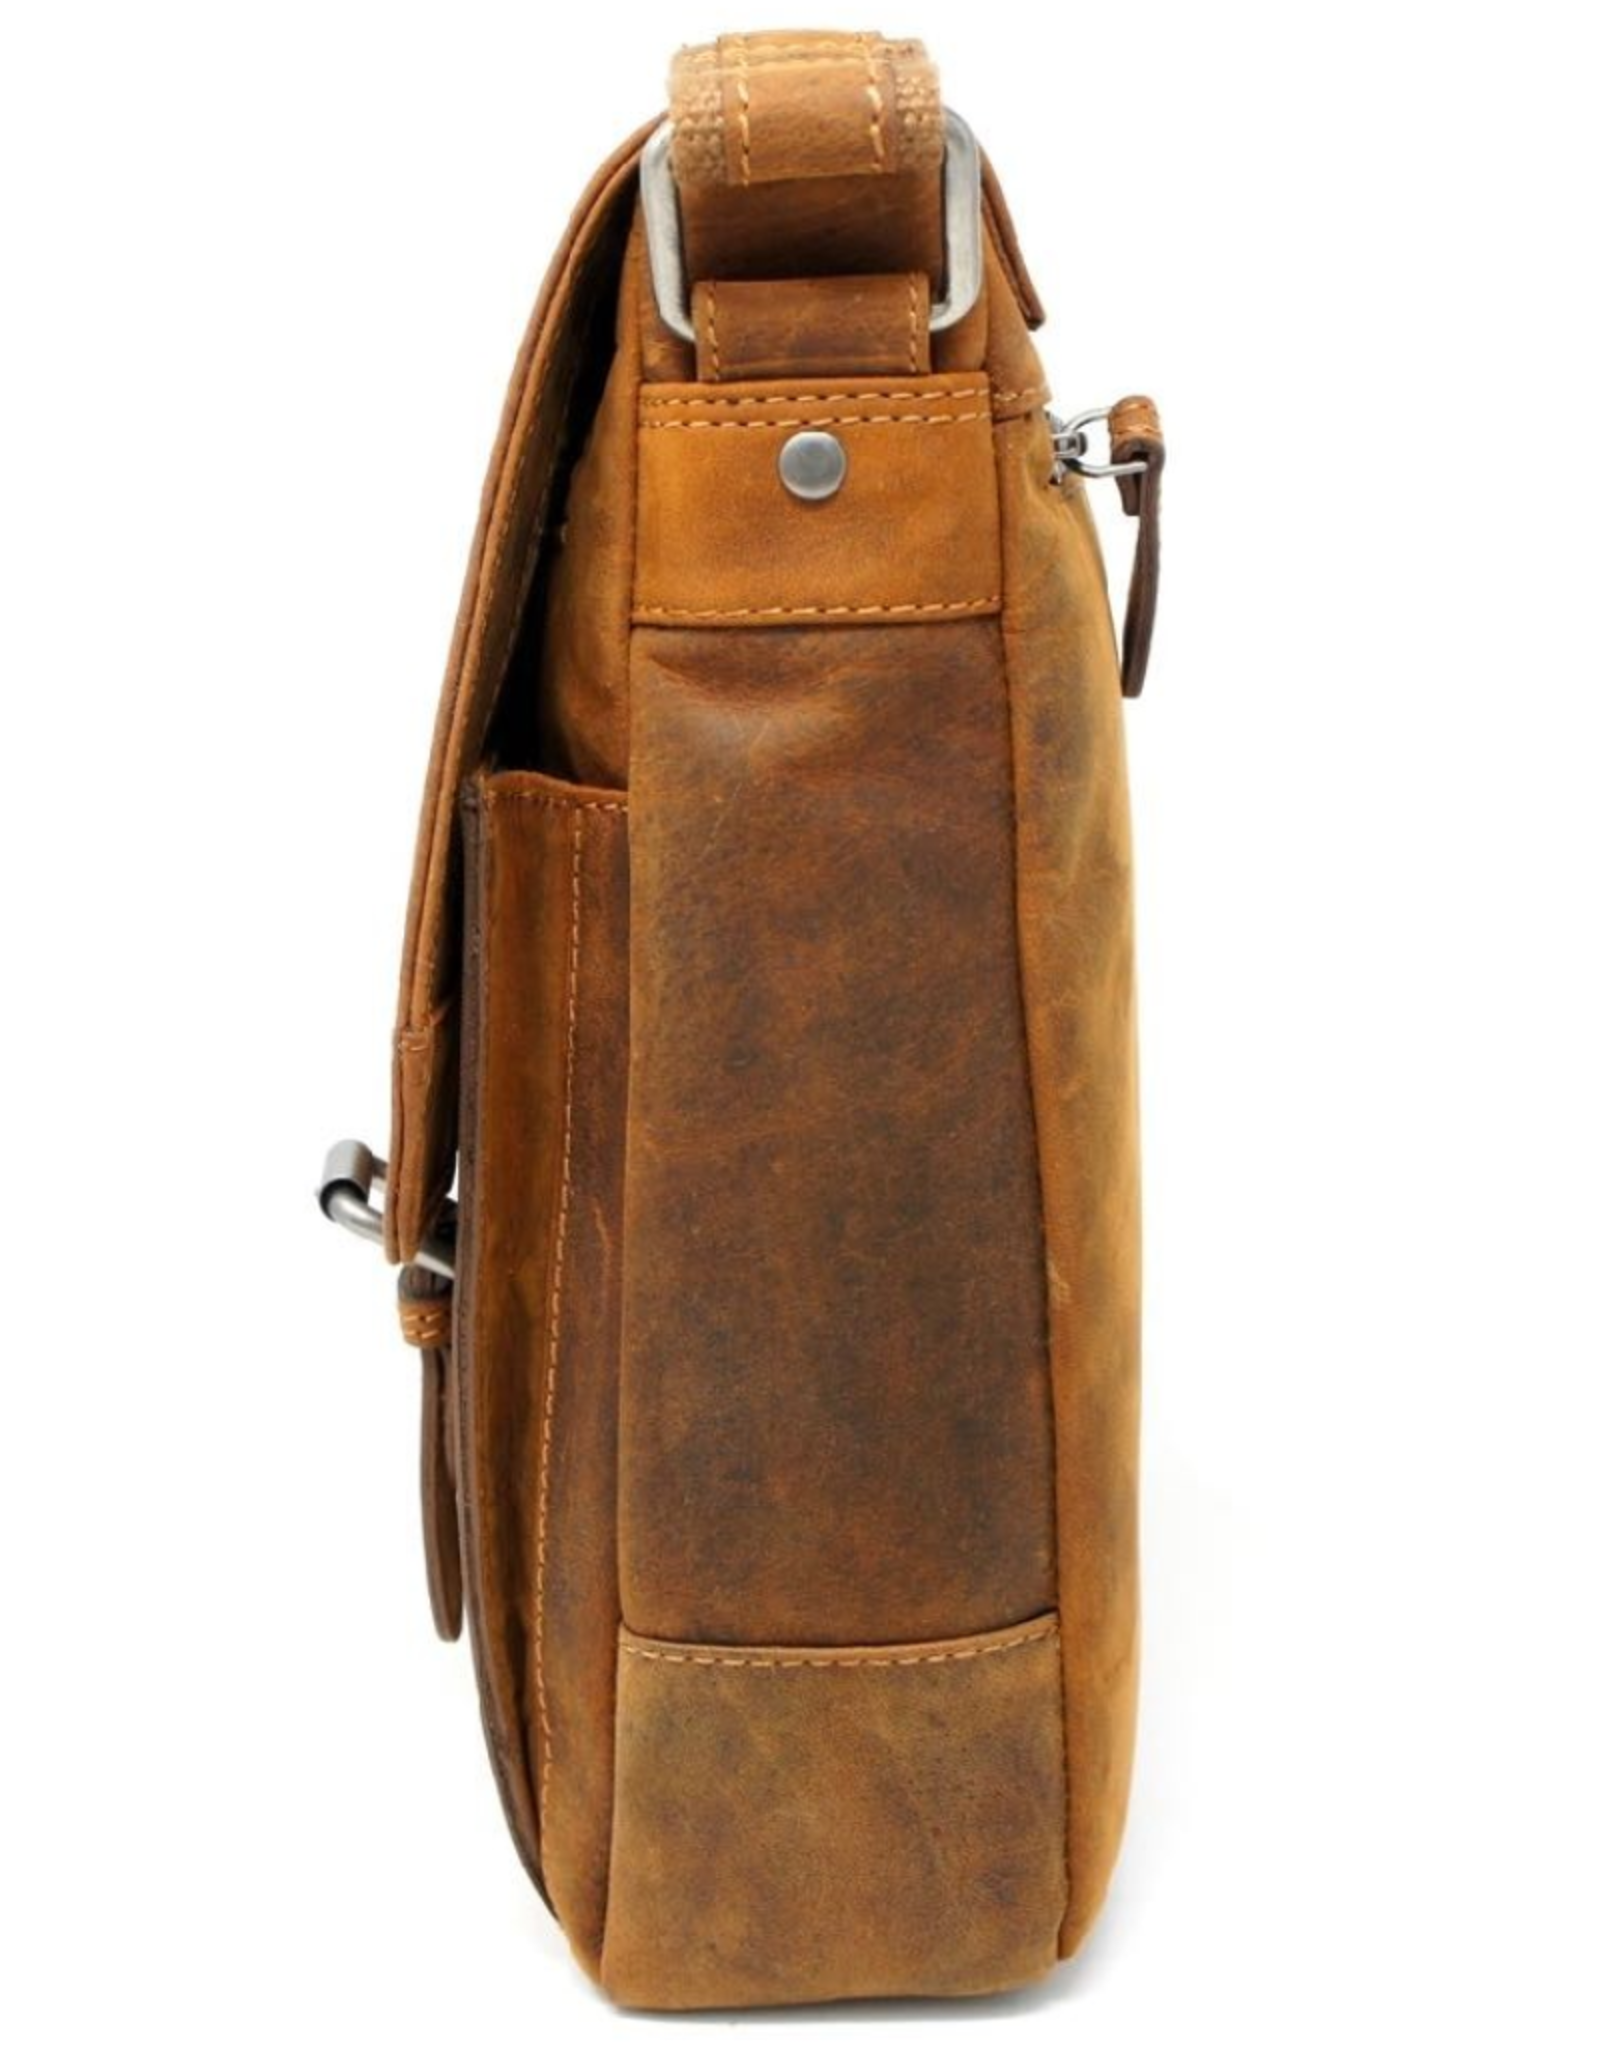 HillBurry Leather Shoulder bags  Leather crossbody bags - HillBurry Leather Crossbody Bag (Mango Tan)